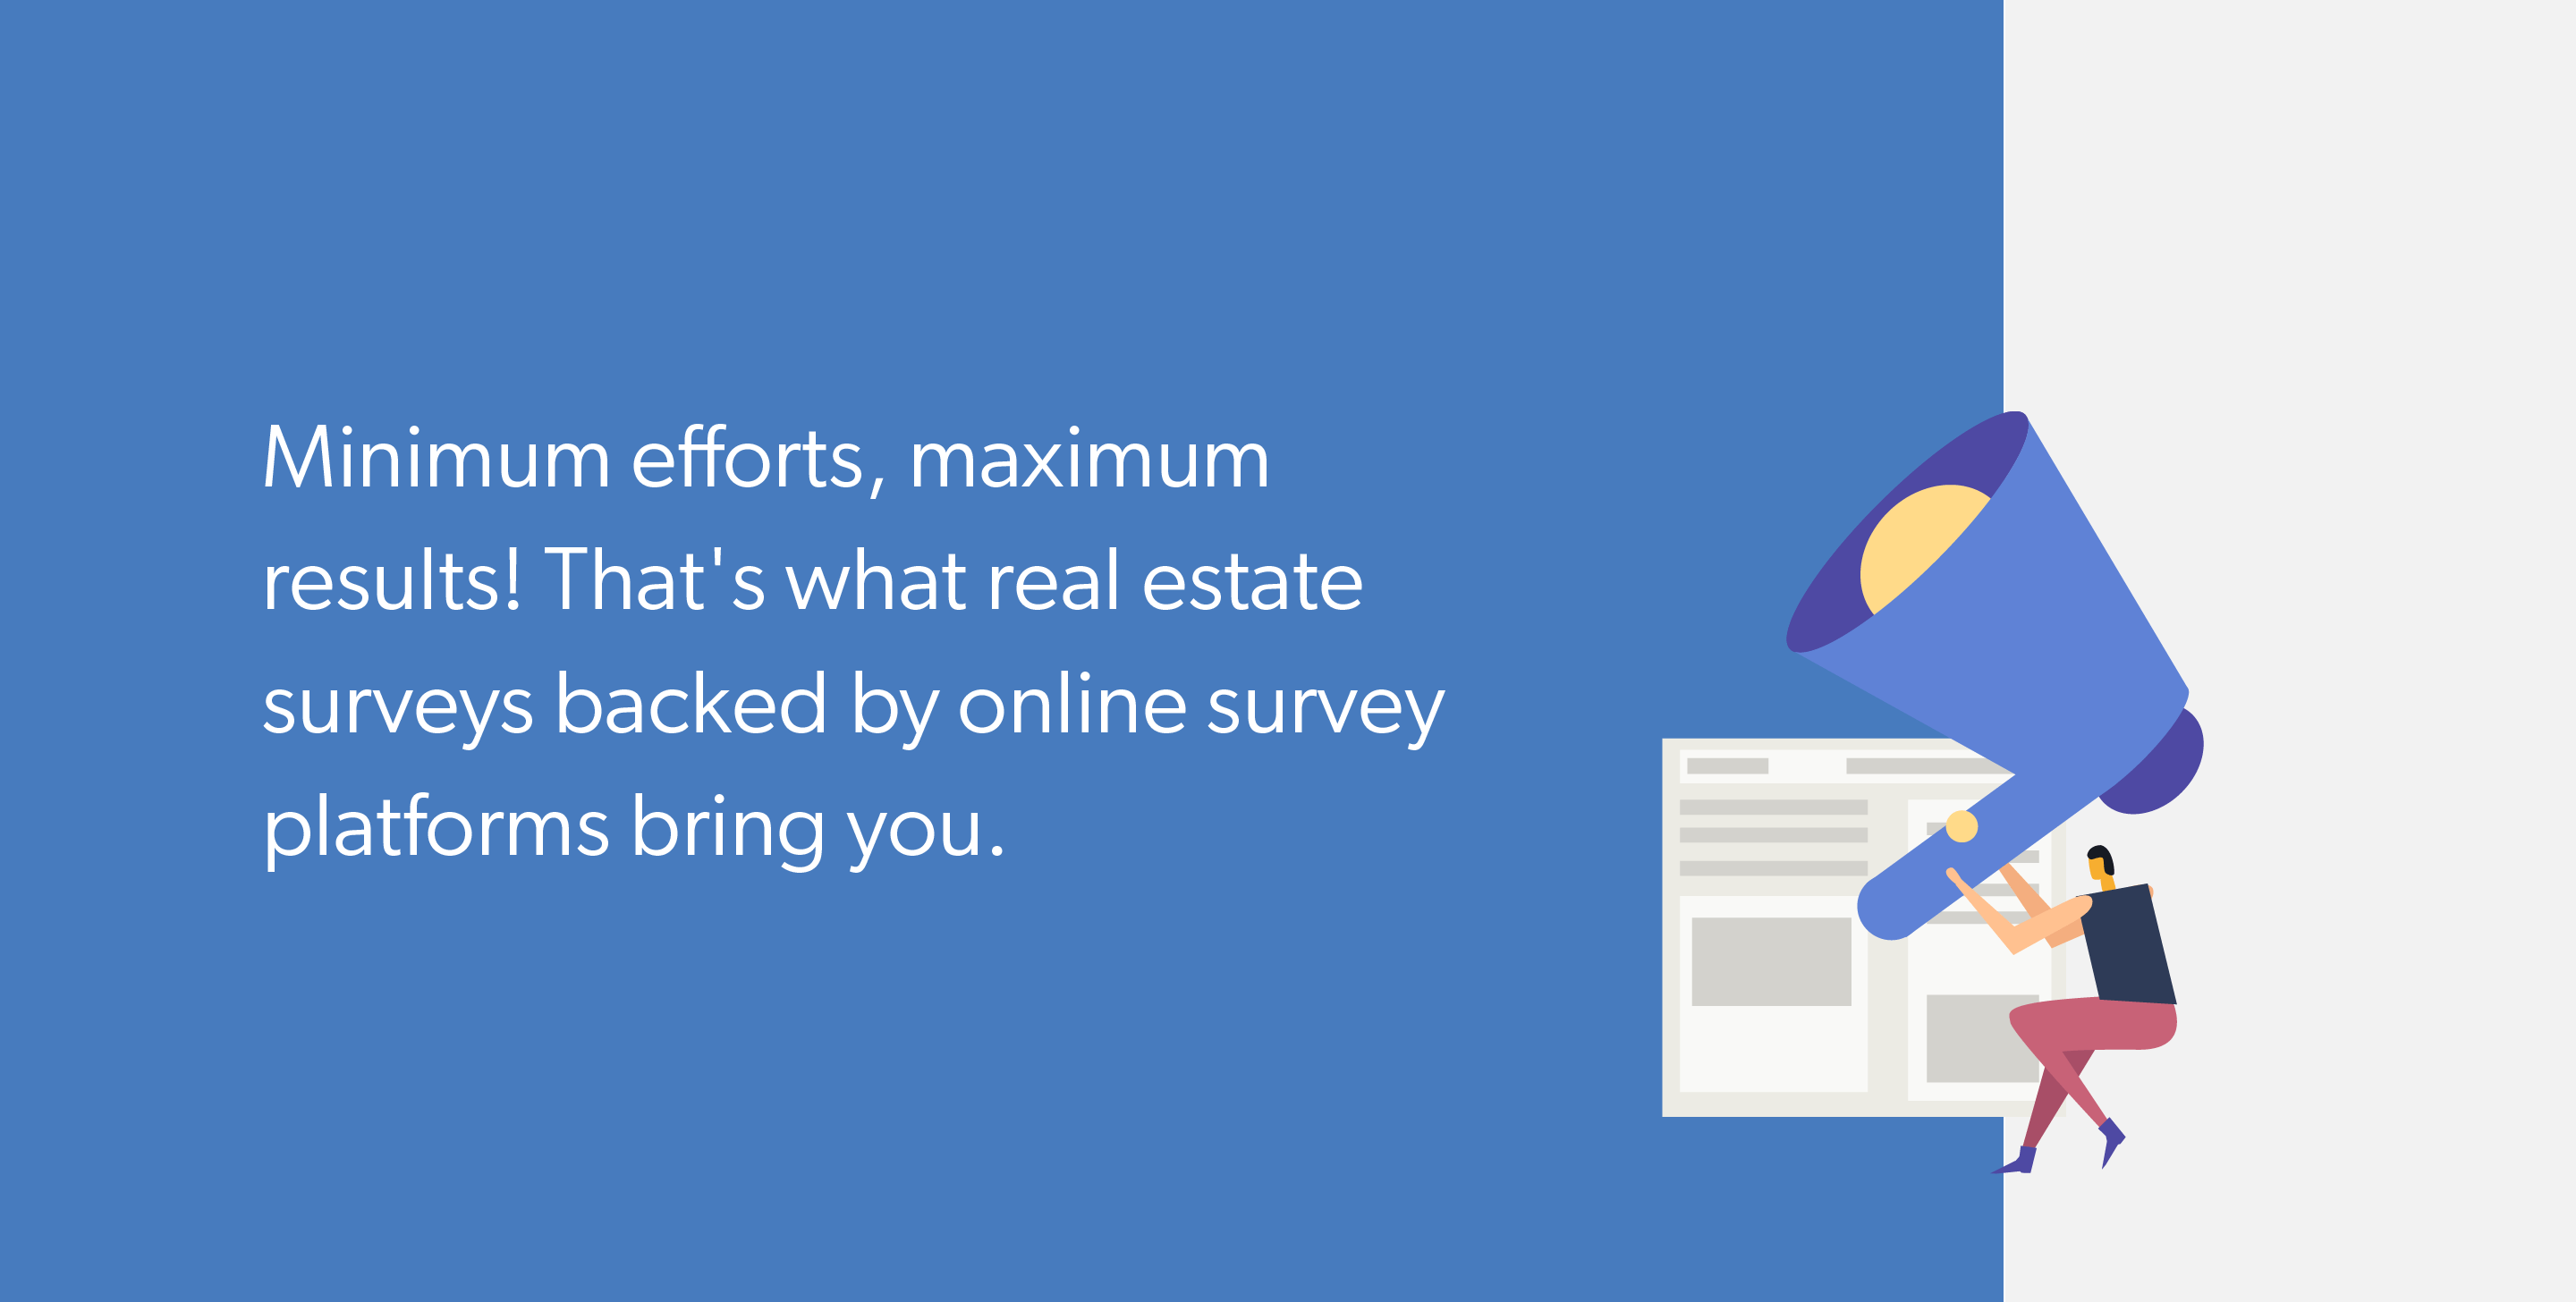 Conduct Real Estate Surveys Aided by Survey Platforms.